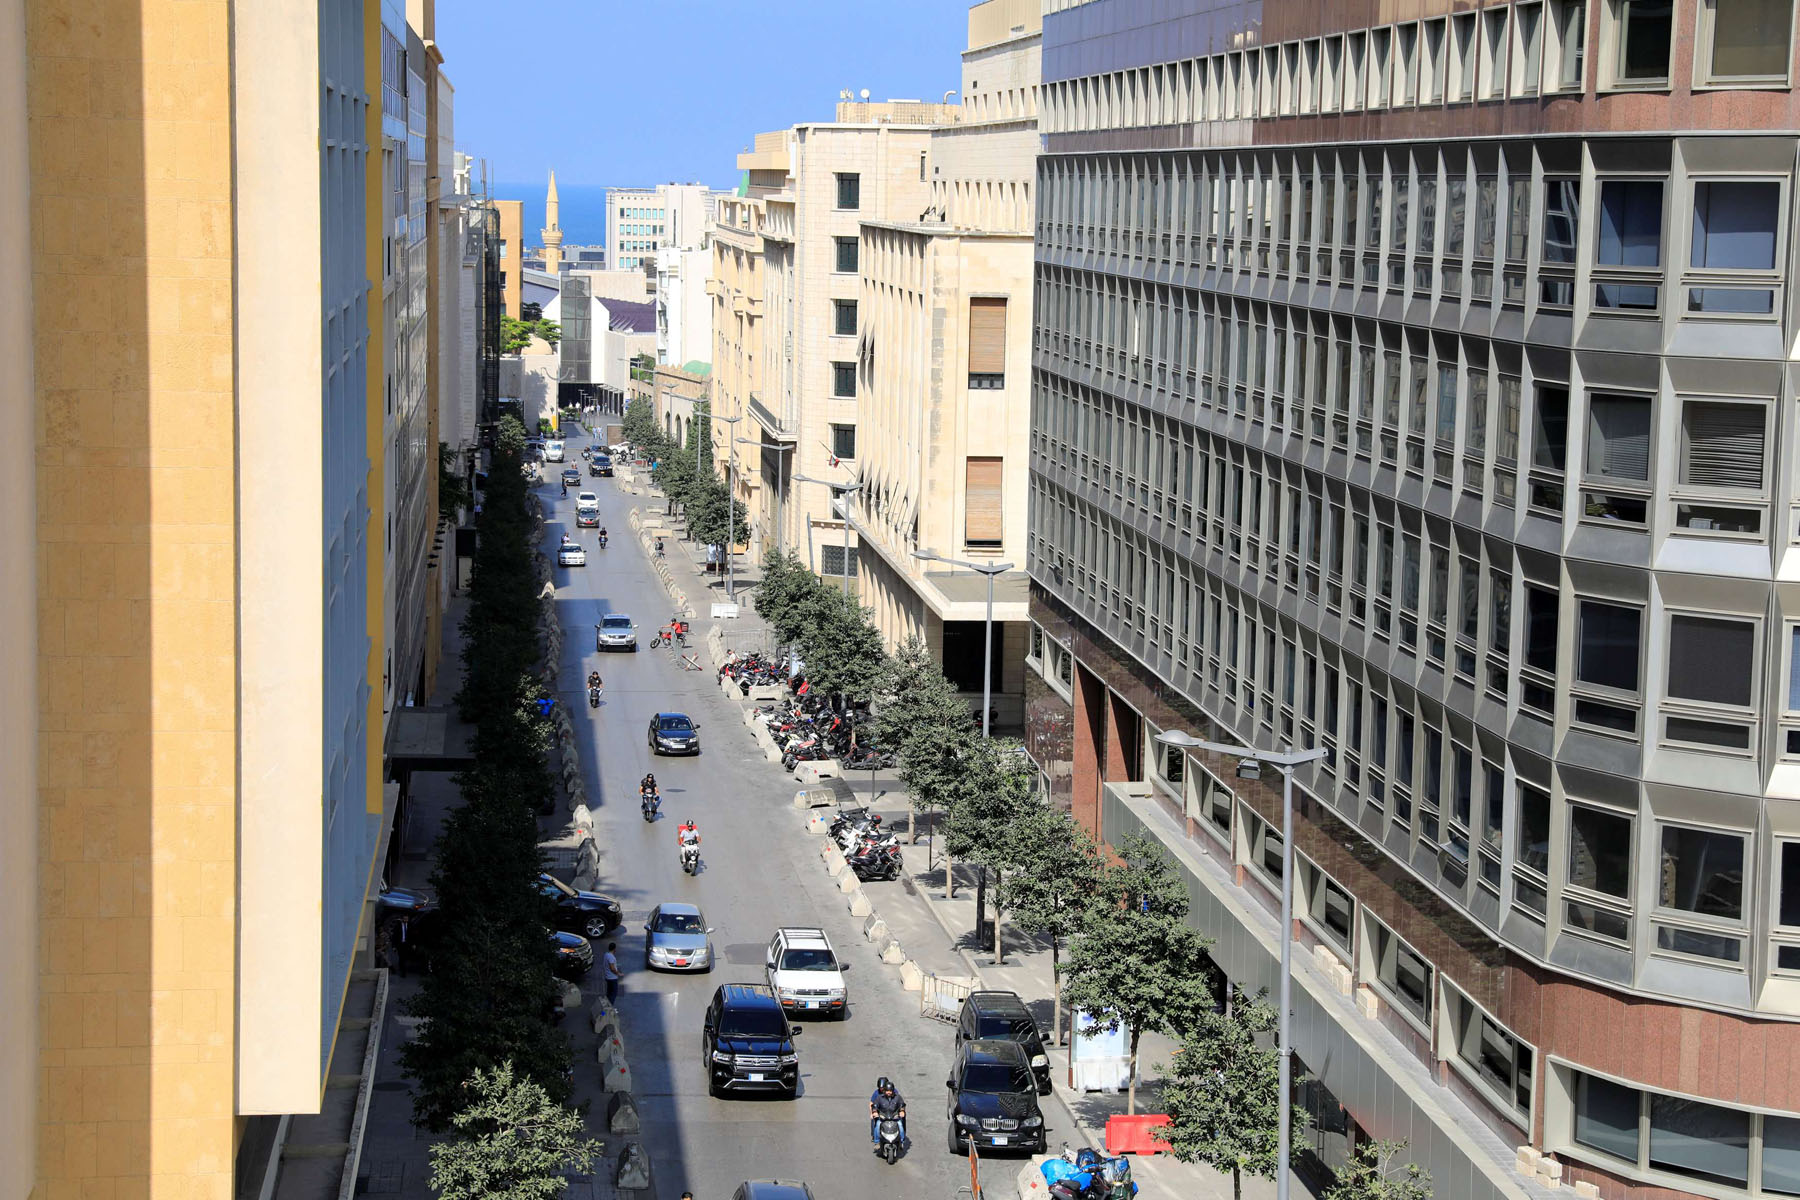 A general view shows a street hosting banks and financial institutions, known as Banks Street, in Beirut Central District. (Reuters)